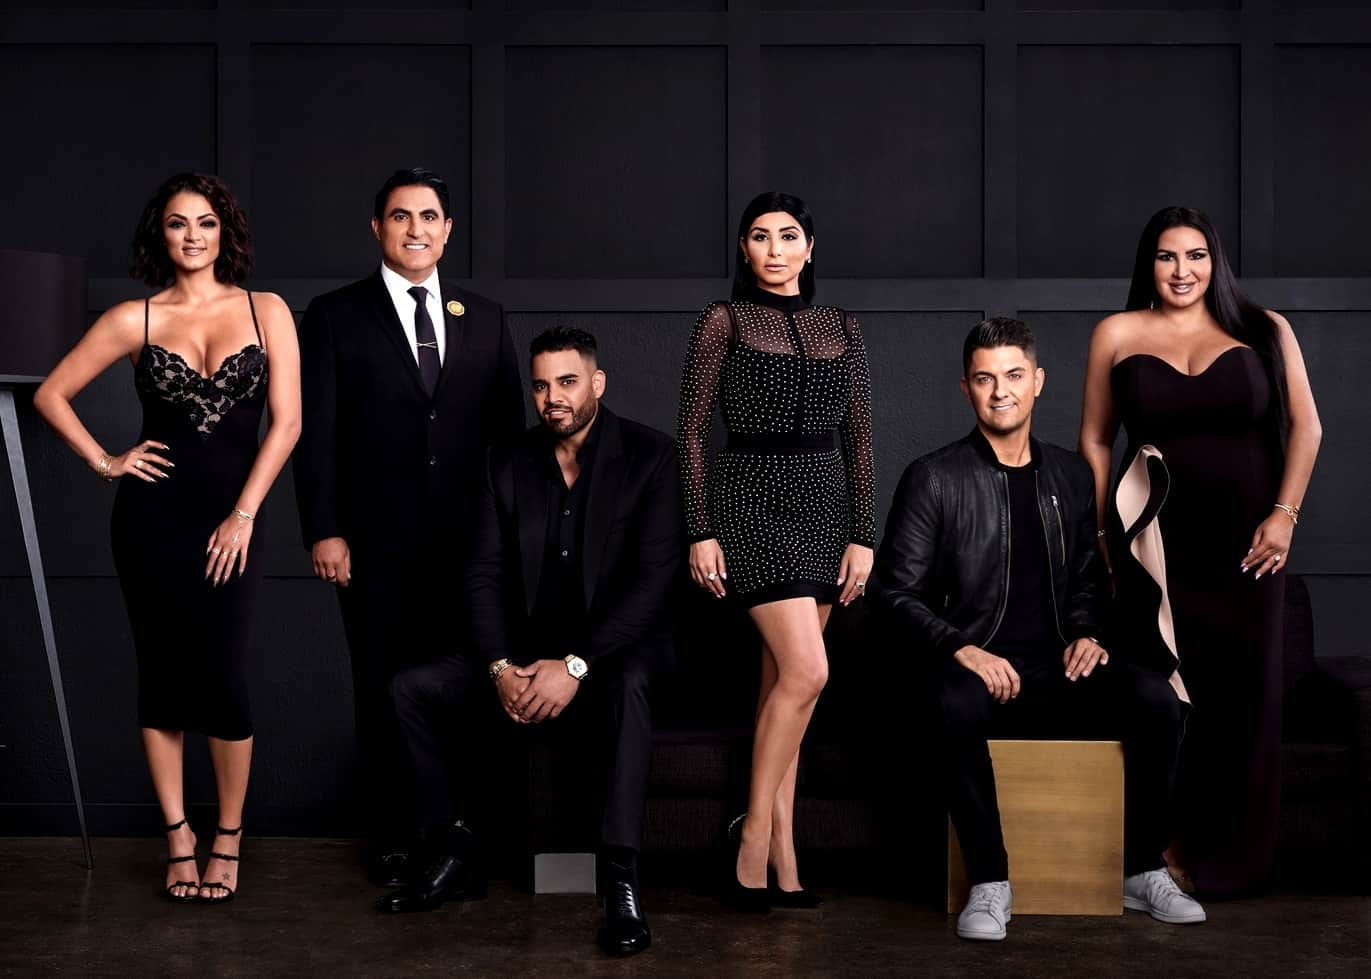 VIDEO: Watch The Shahs Of Sunset Season 9 Trailer! 'MJ' Javid And Reza Farahan Attempt To Repair Their Years-Long Friendship As MJ's Husband Tommy Gets In The Way, Mike Shouhed And Girlfriend Paulina Show Cracks In Their Relationship, Plus Mike And Destiney Rose Get Into A Heated Argument